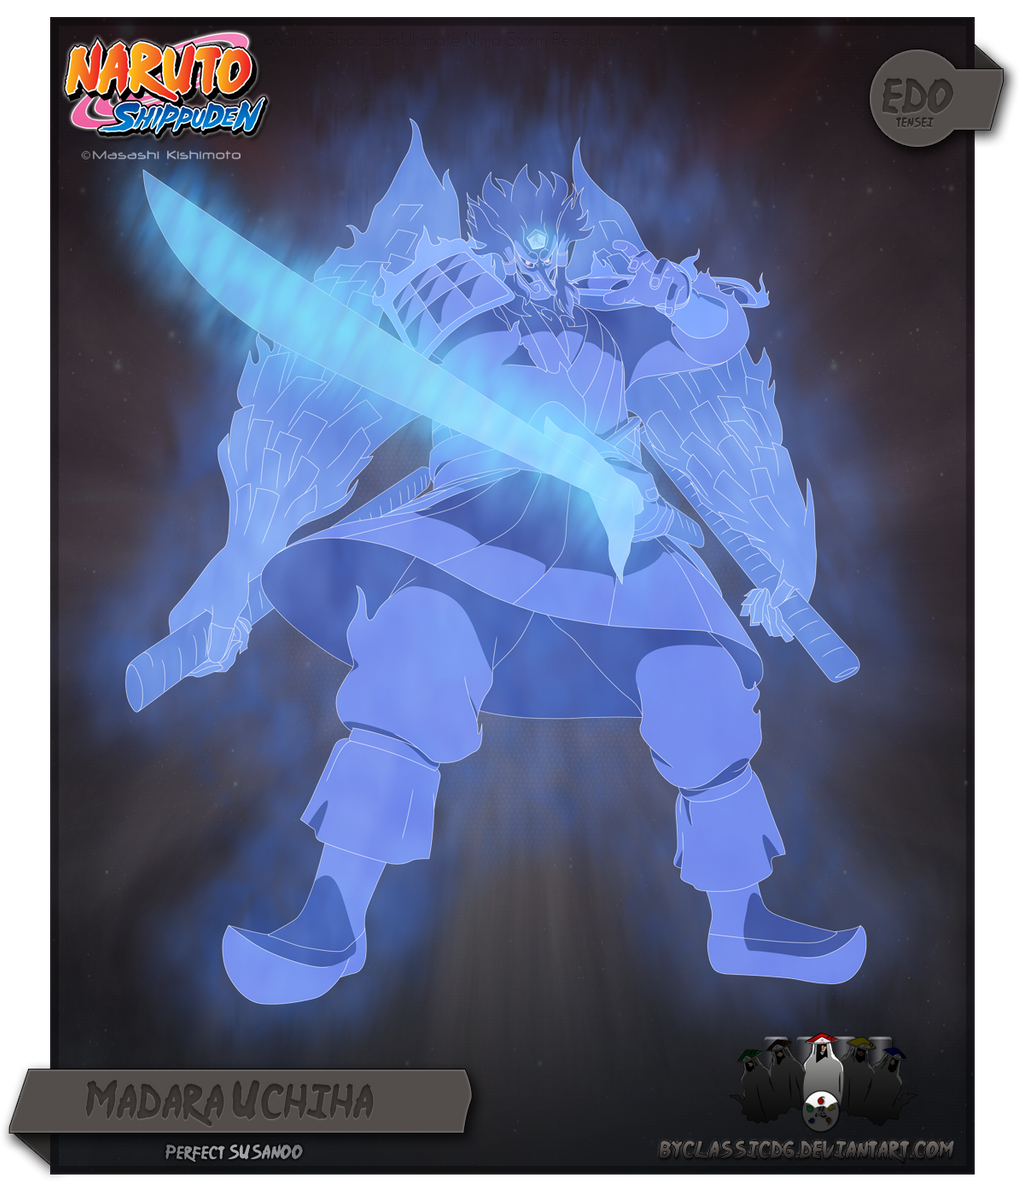 Madara Perfect Susanoo by byClassicDG on DeviantArt